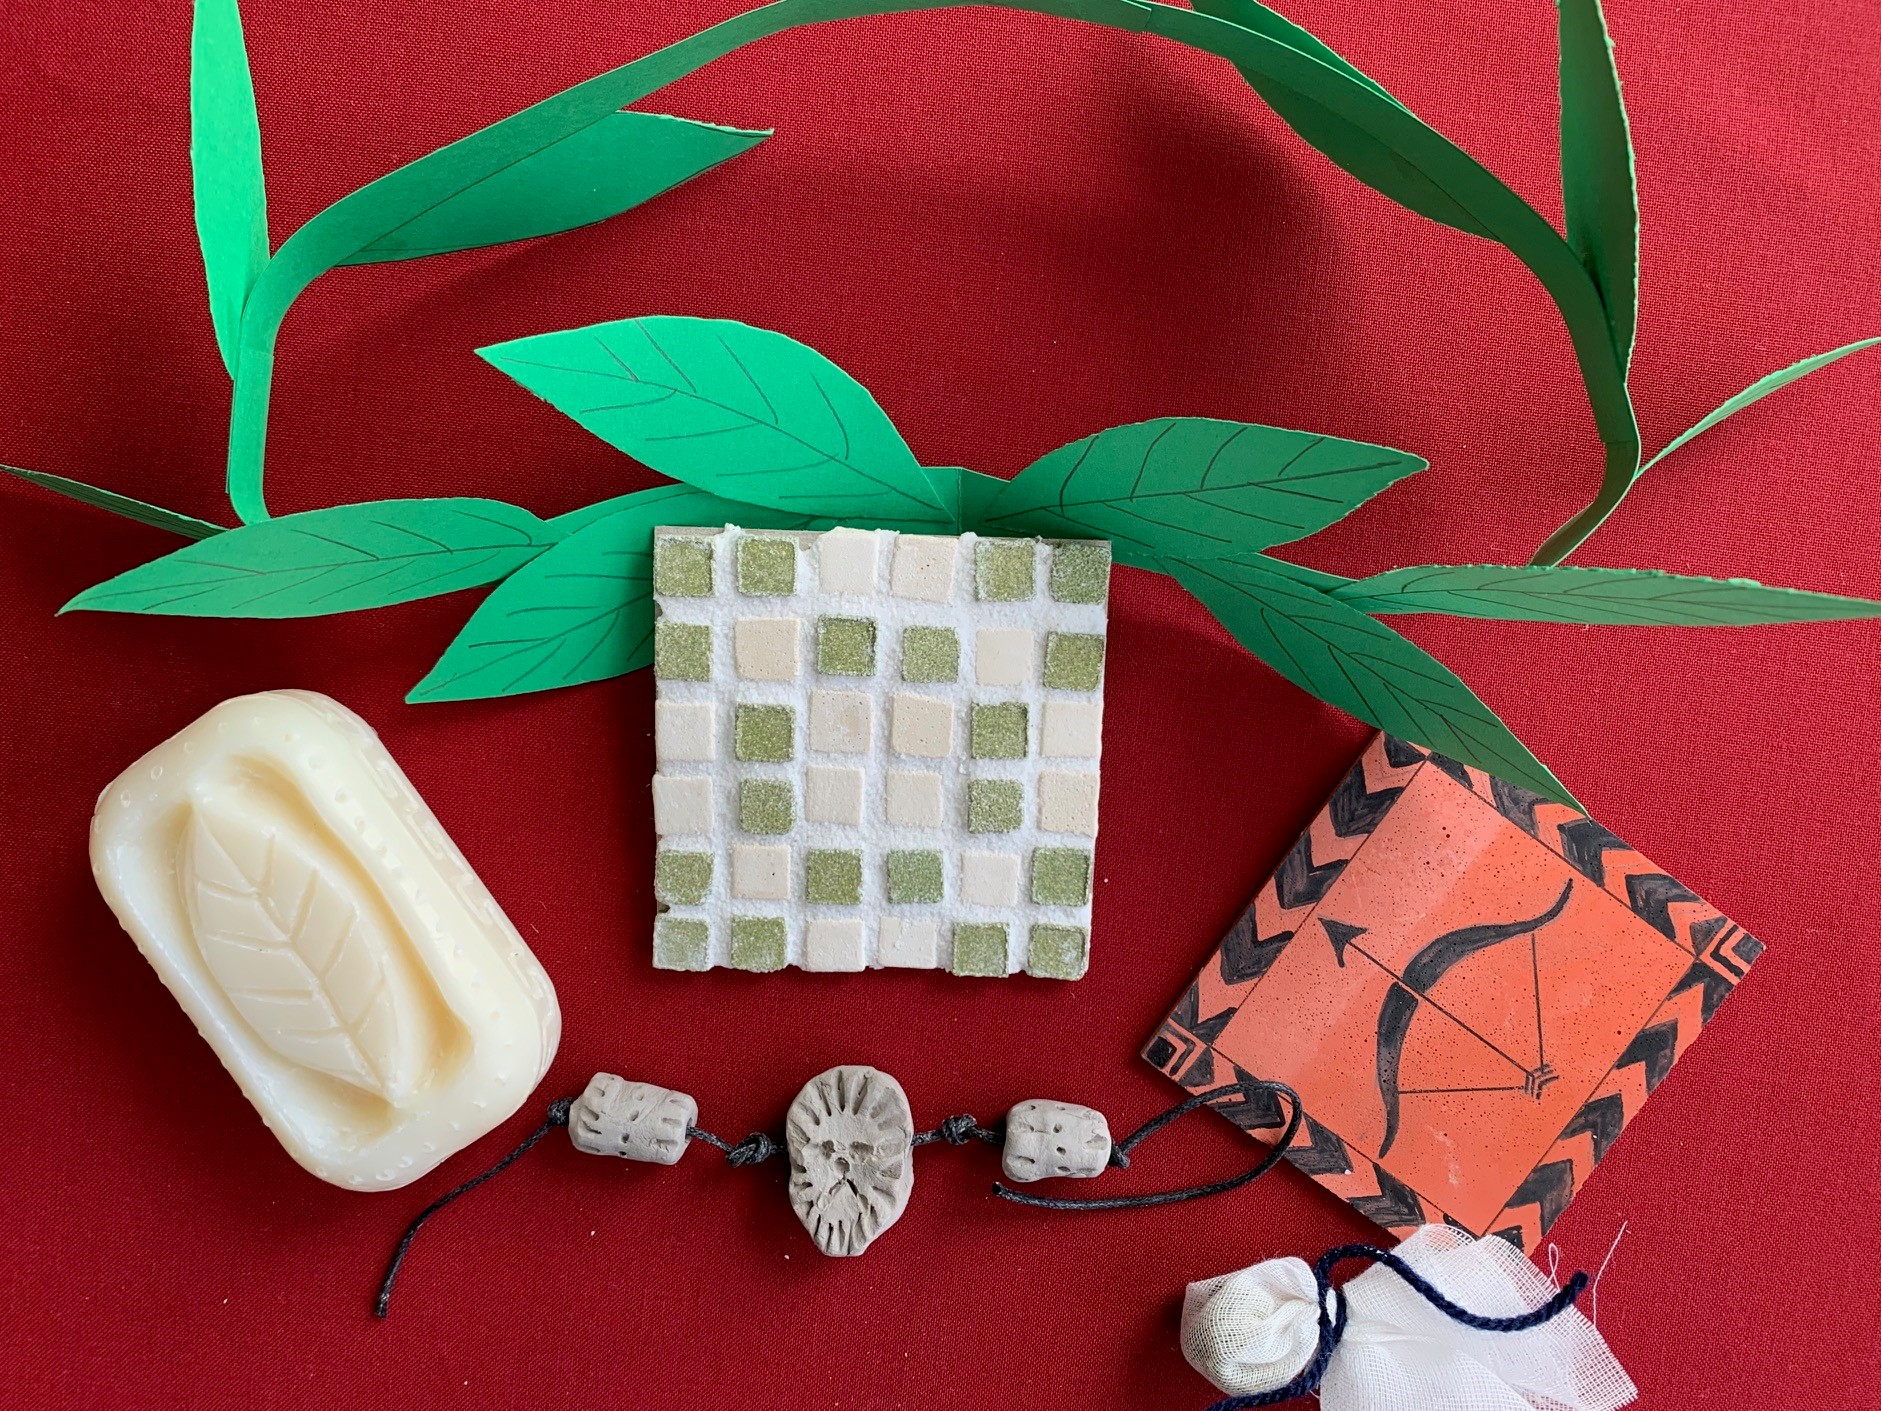 The projects inclue a soap carving, a mosaic tile, laurel wreath made of paper, a painted tile, a clay charm bracelet and a cloth medicine bag.